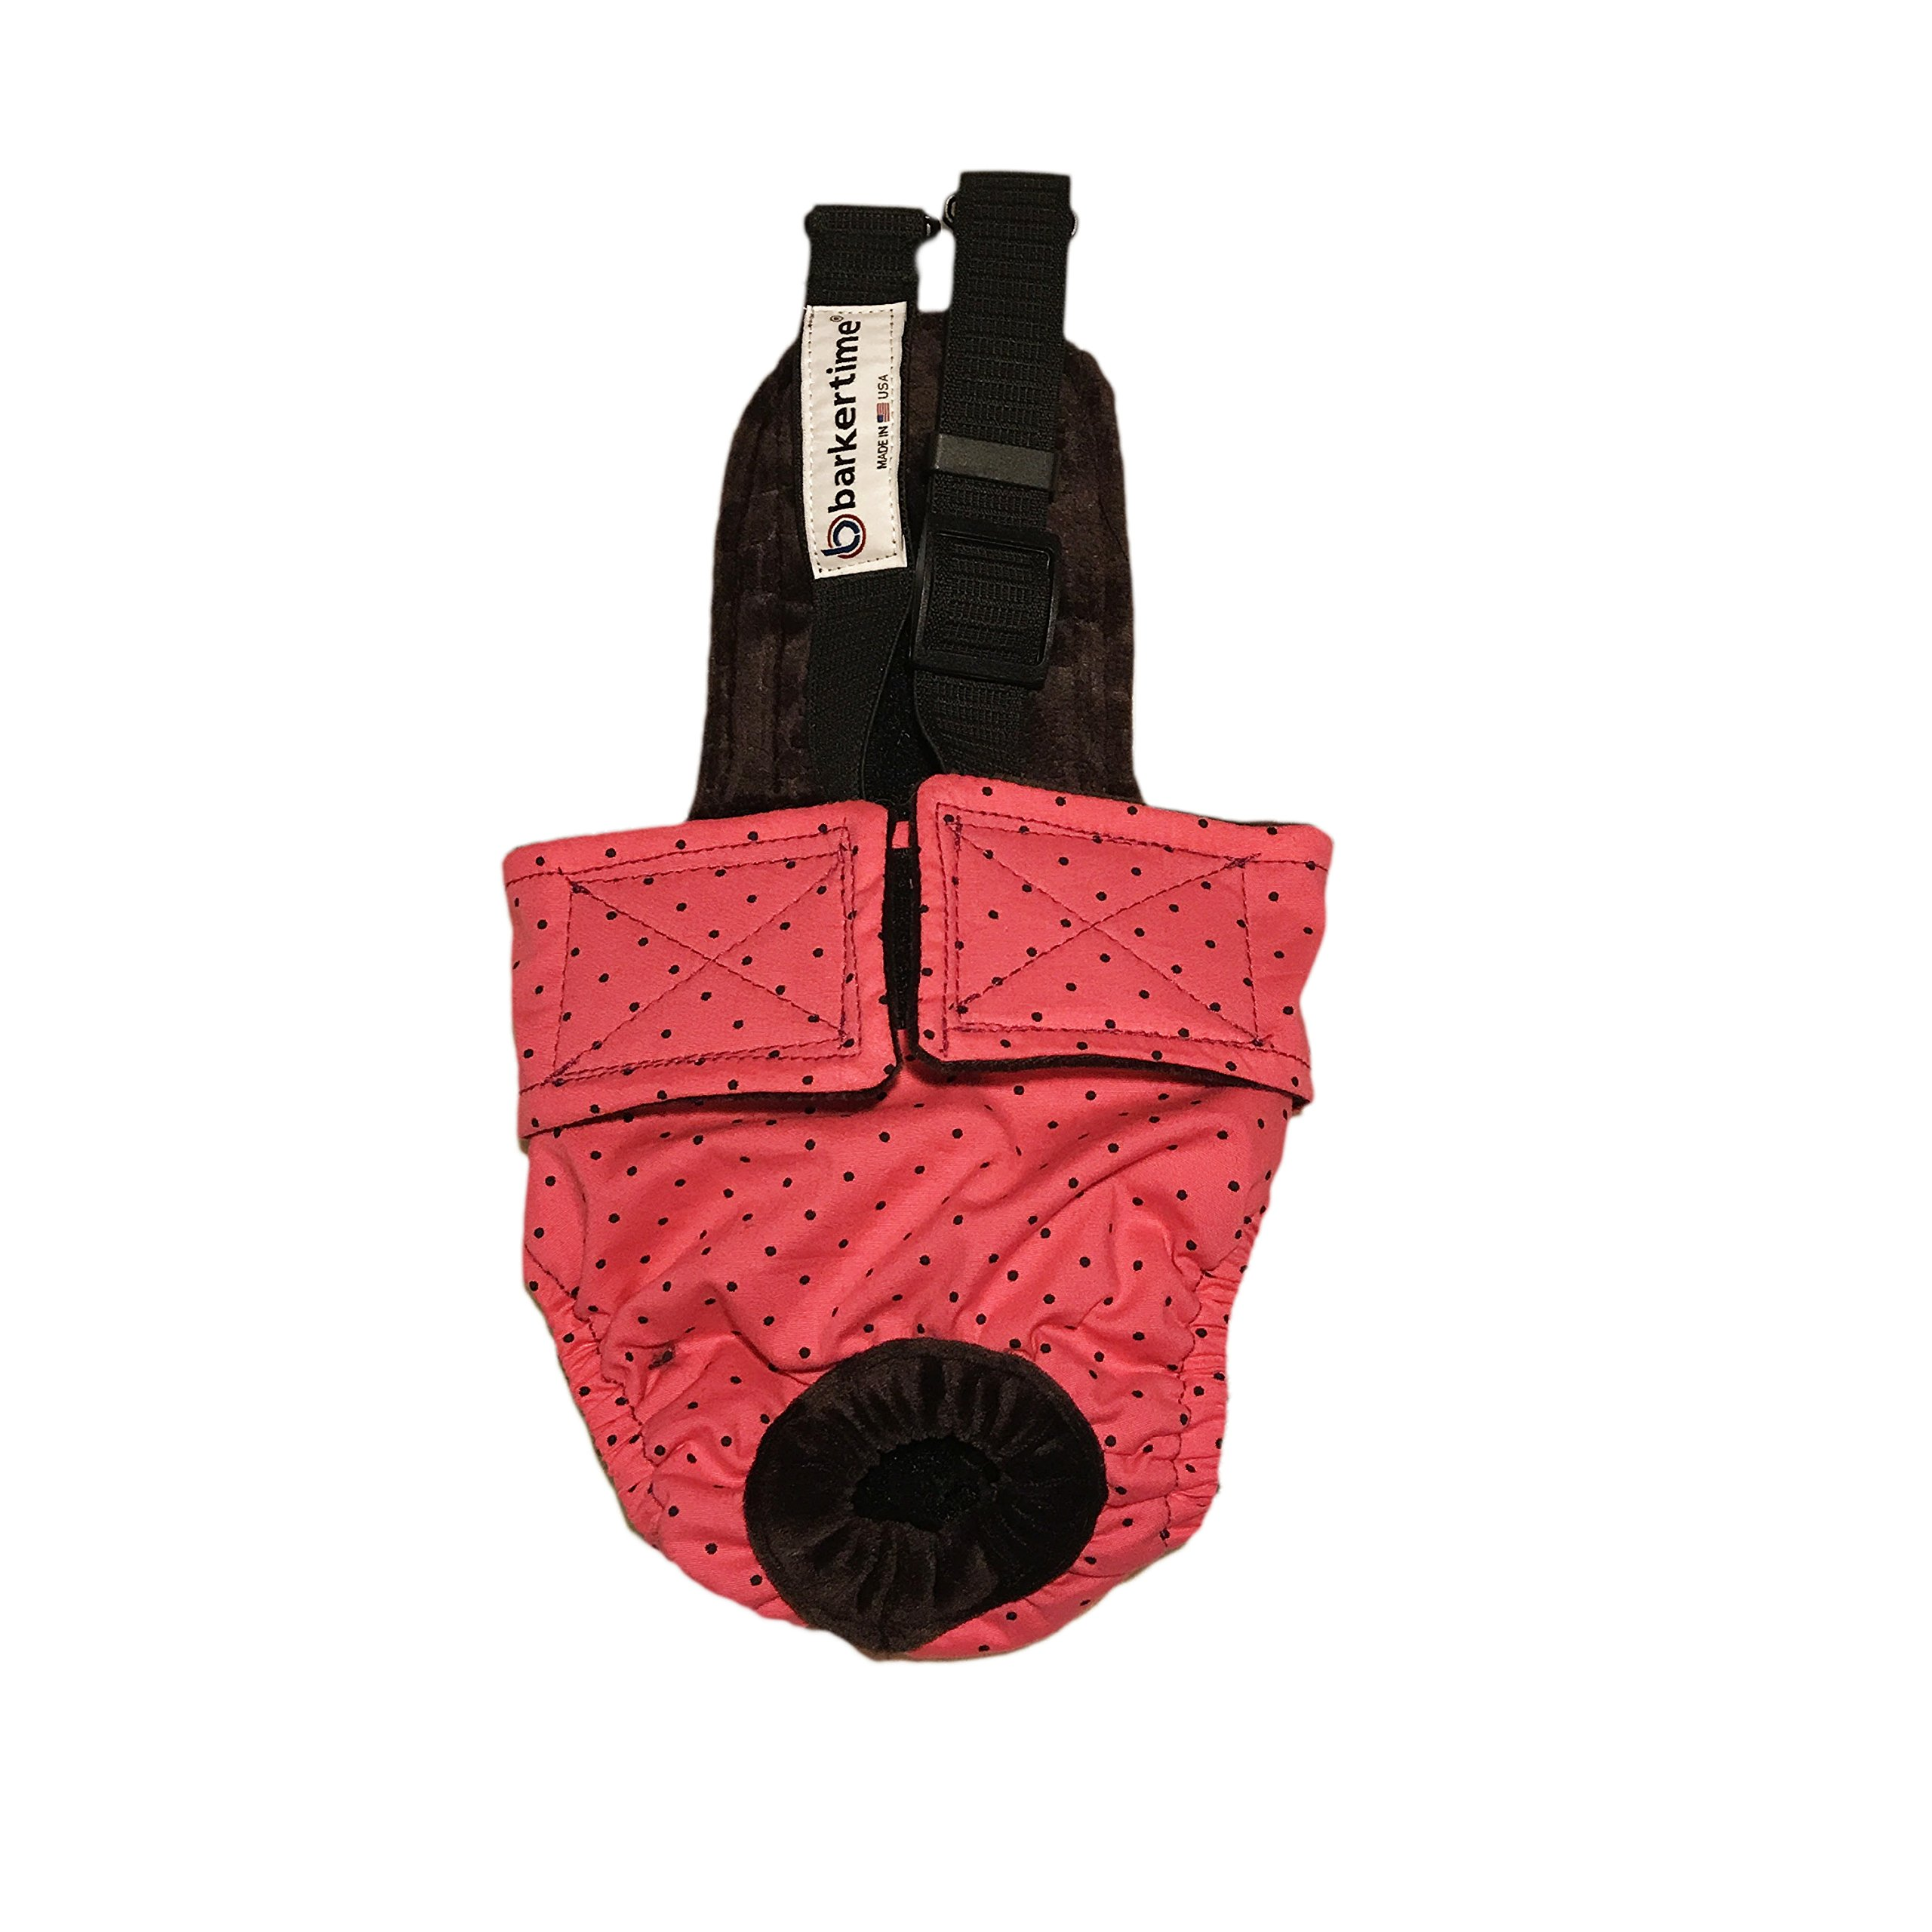 Dog Diaper Overall - Made in USA - Black Polka Dot on Pink Escape-Proof Washable Dog Diaper Overall, L, Without Tail Hole for Dog Incontinence, Marking, Housetraining and Females in Heat